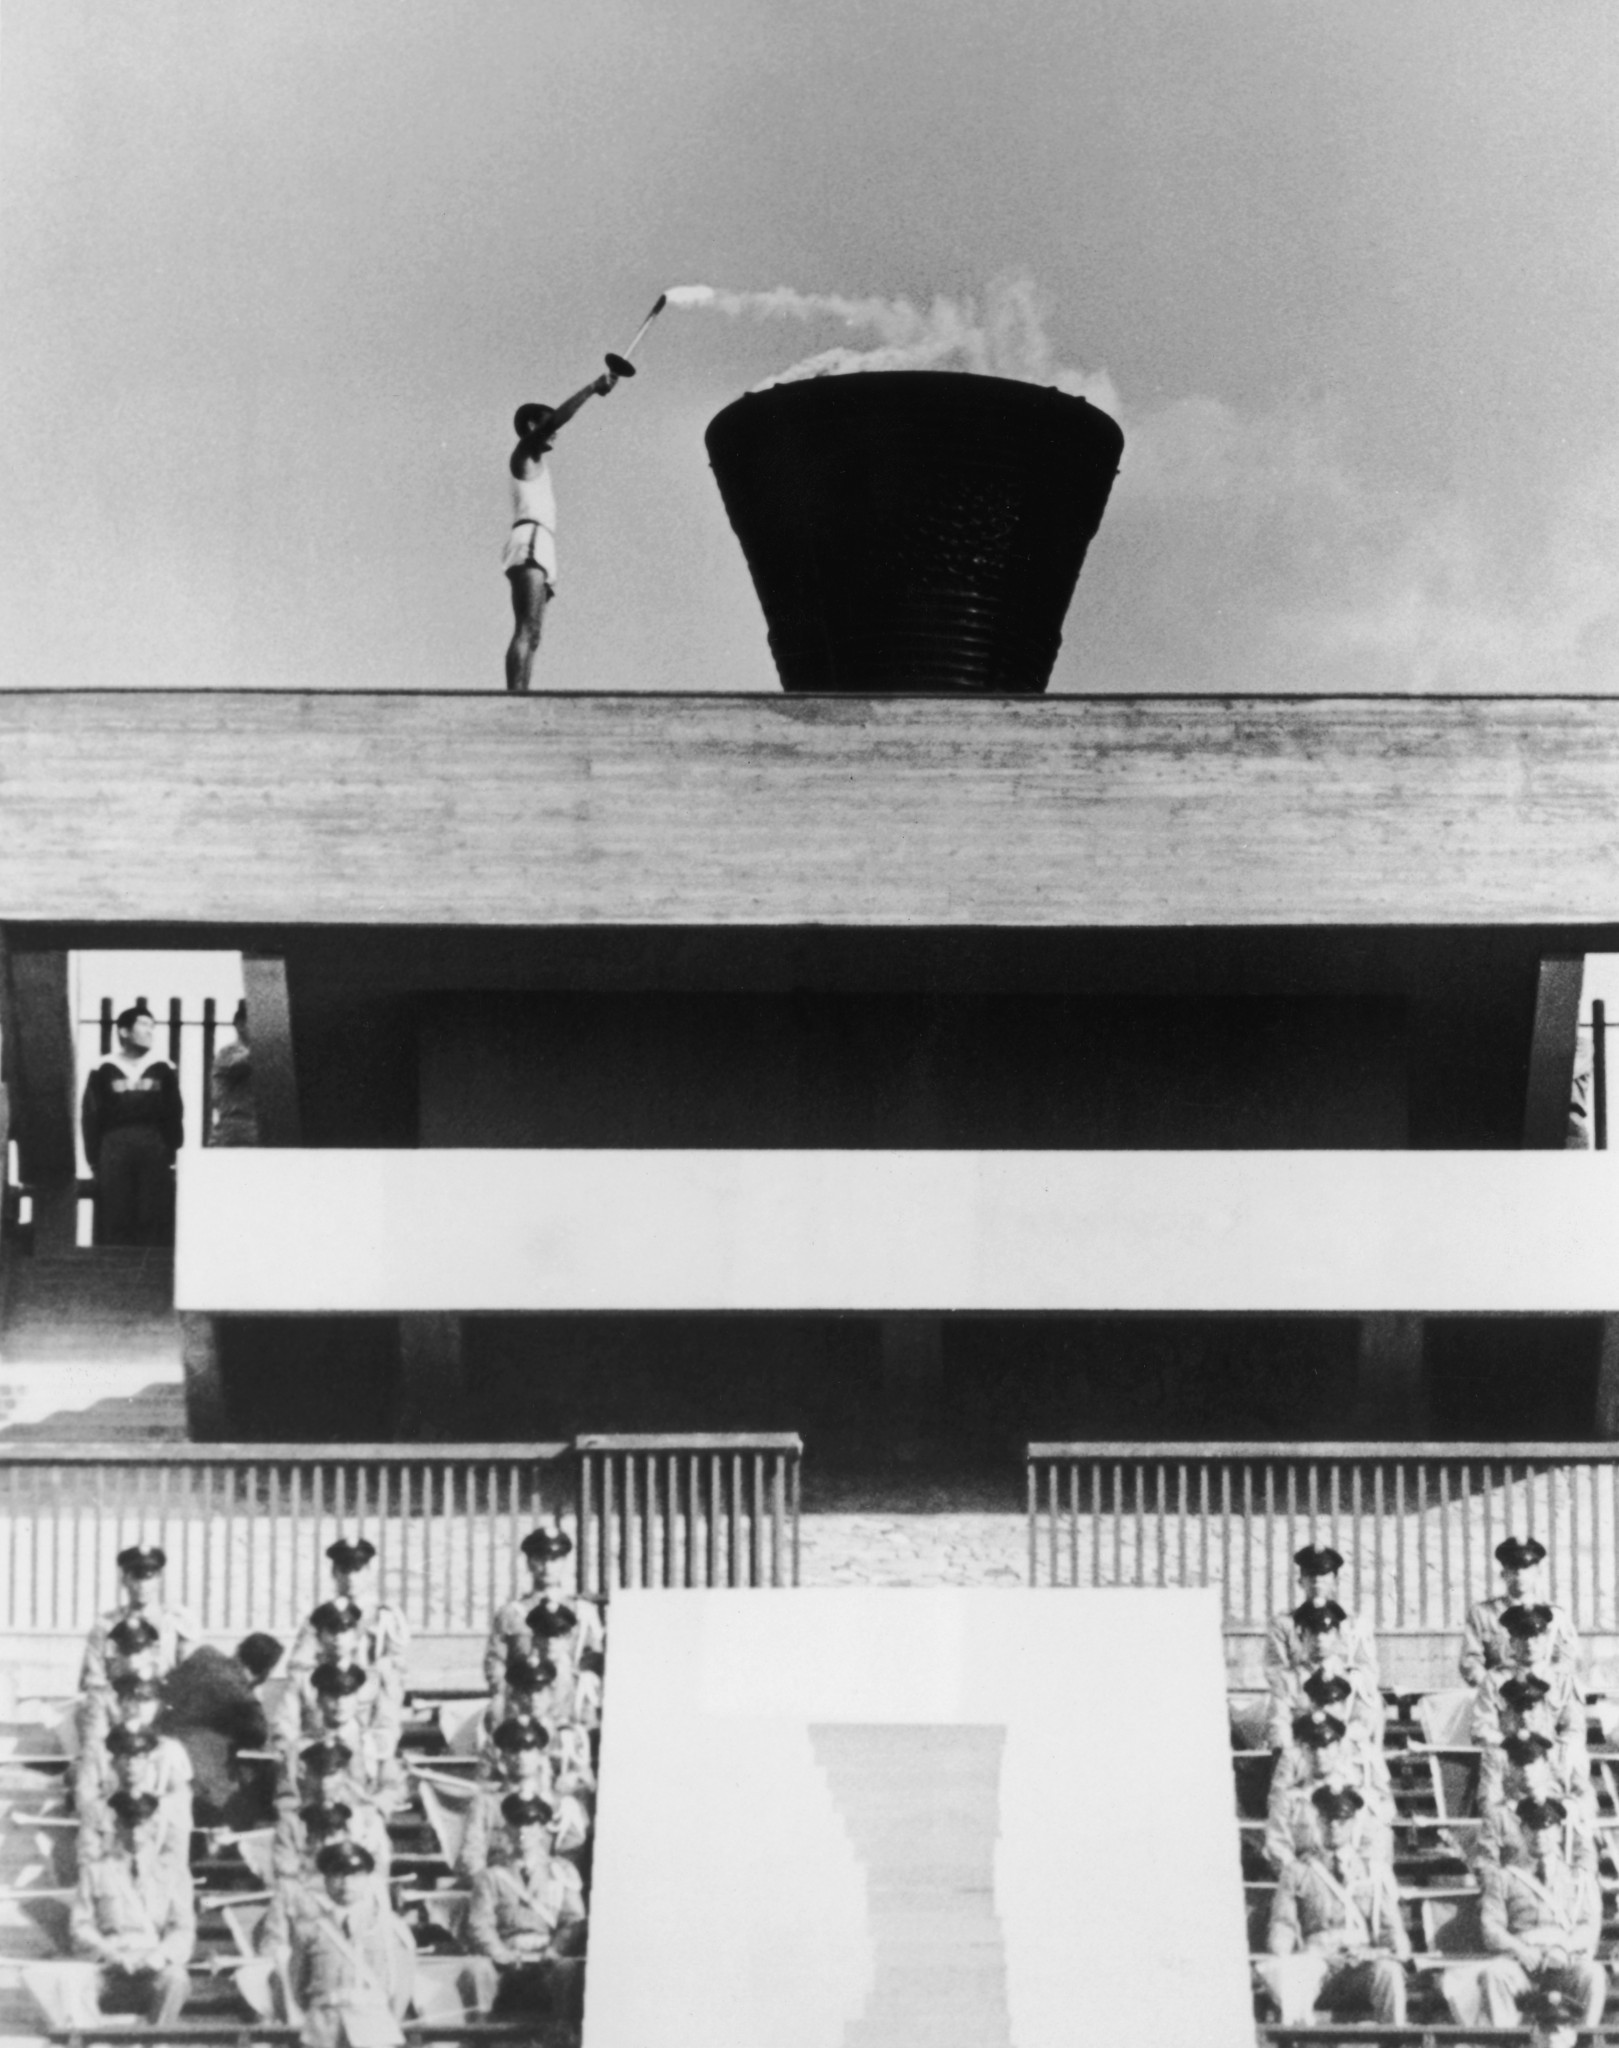 Eternal flame from Tokyo 1964 Olympics was relit four years ago